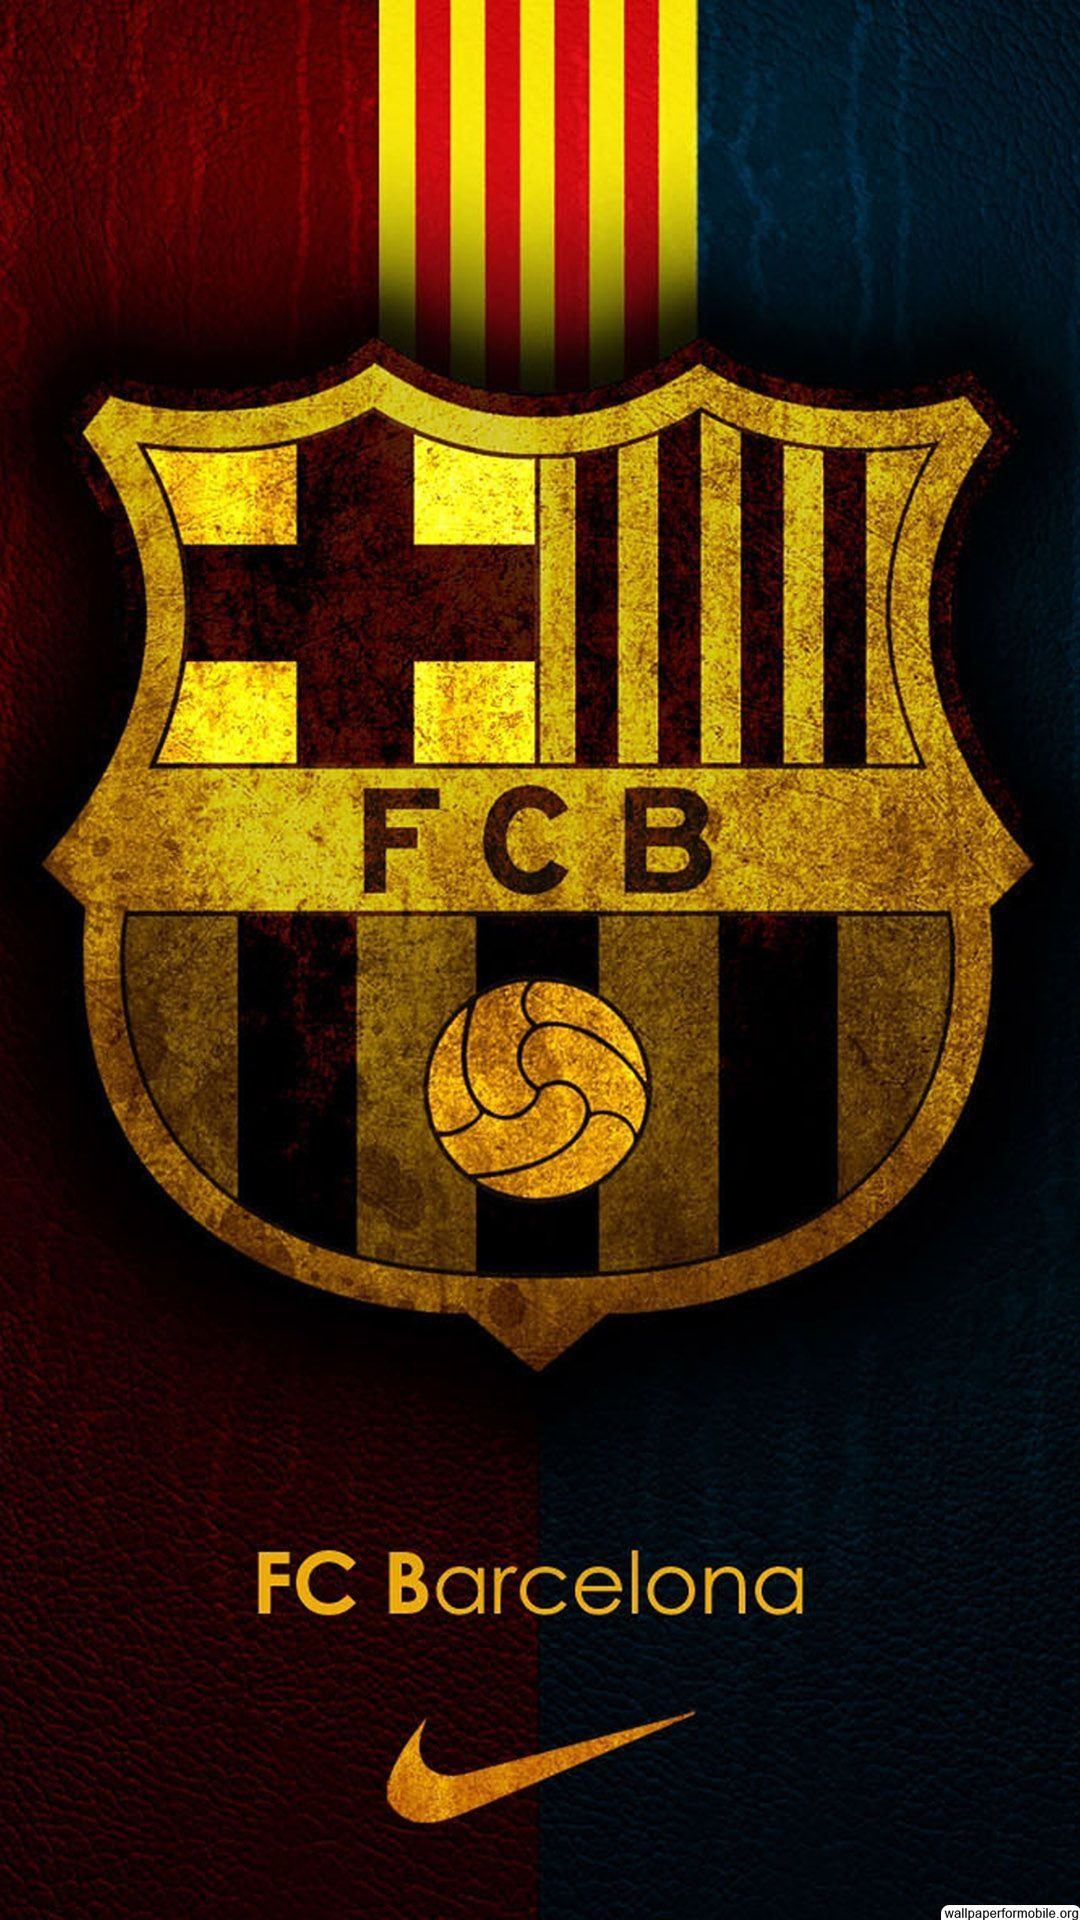 Http Wallpaperformobile Org 9800 Mobile Football Wallpapers Html Mobile Football Wallpap Imagens Do Barcelona Parede De Futebol Papel De Parede Para Iphone